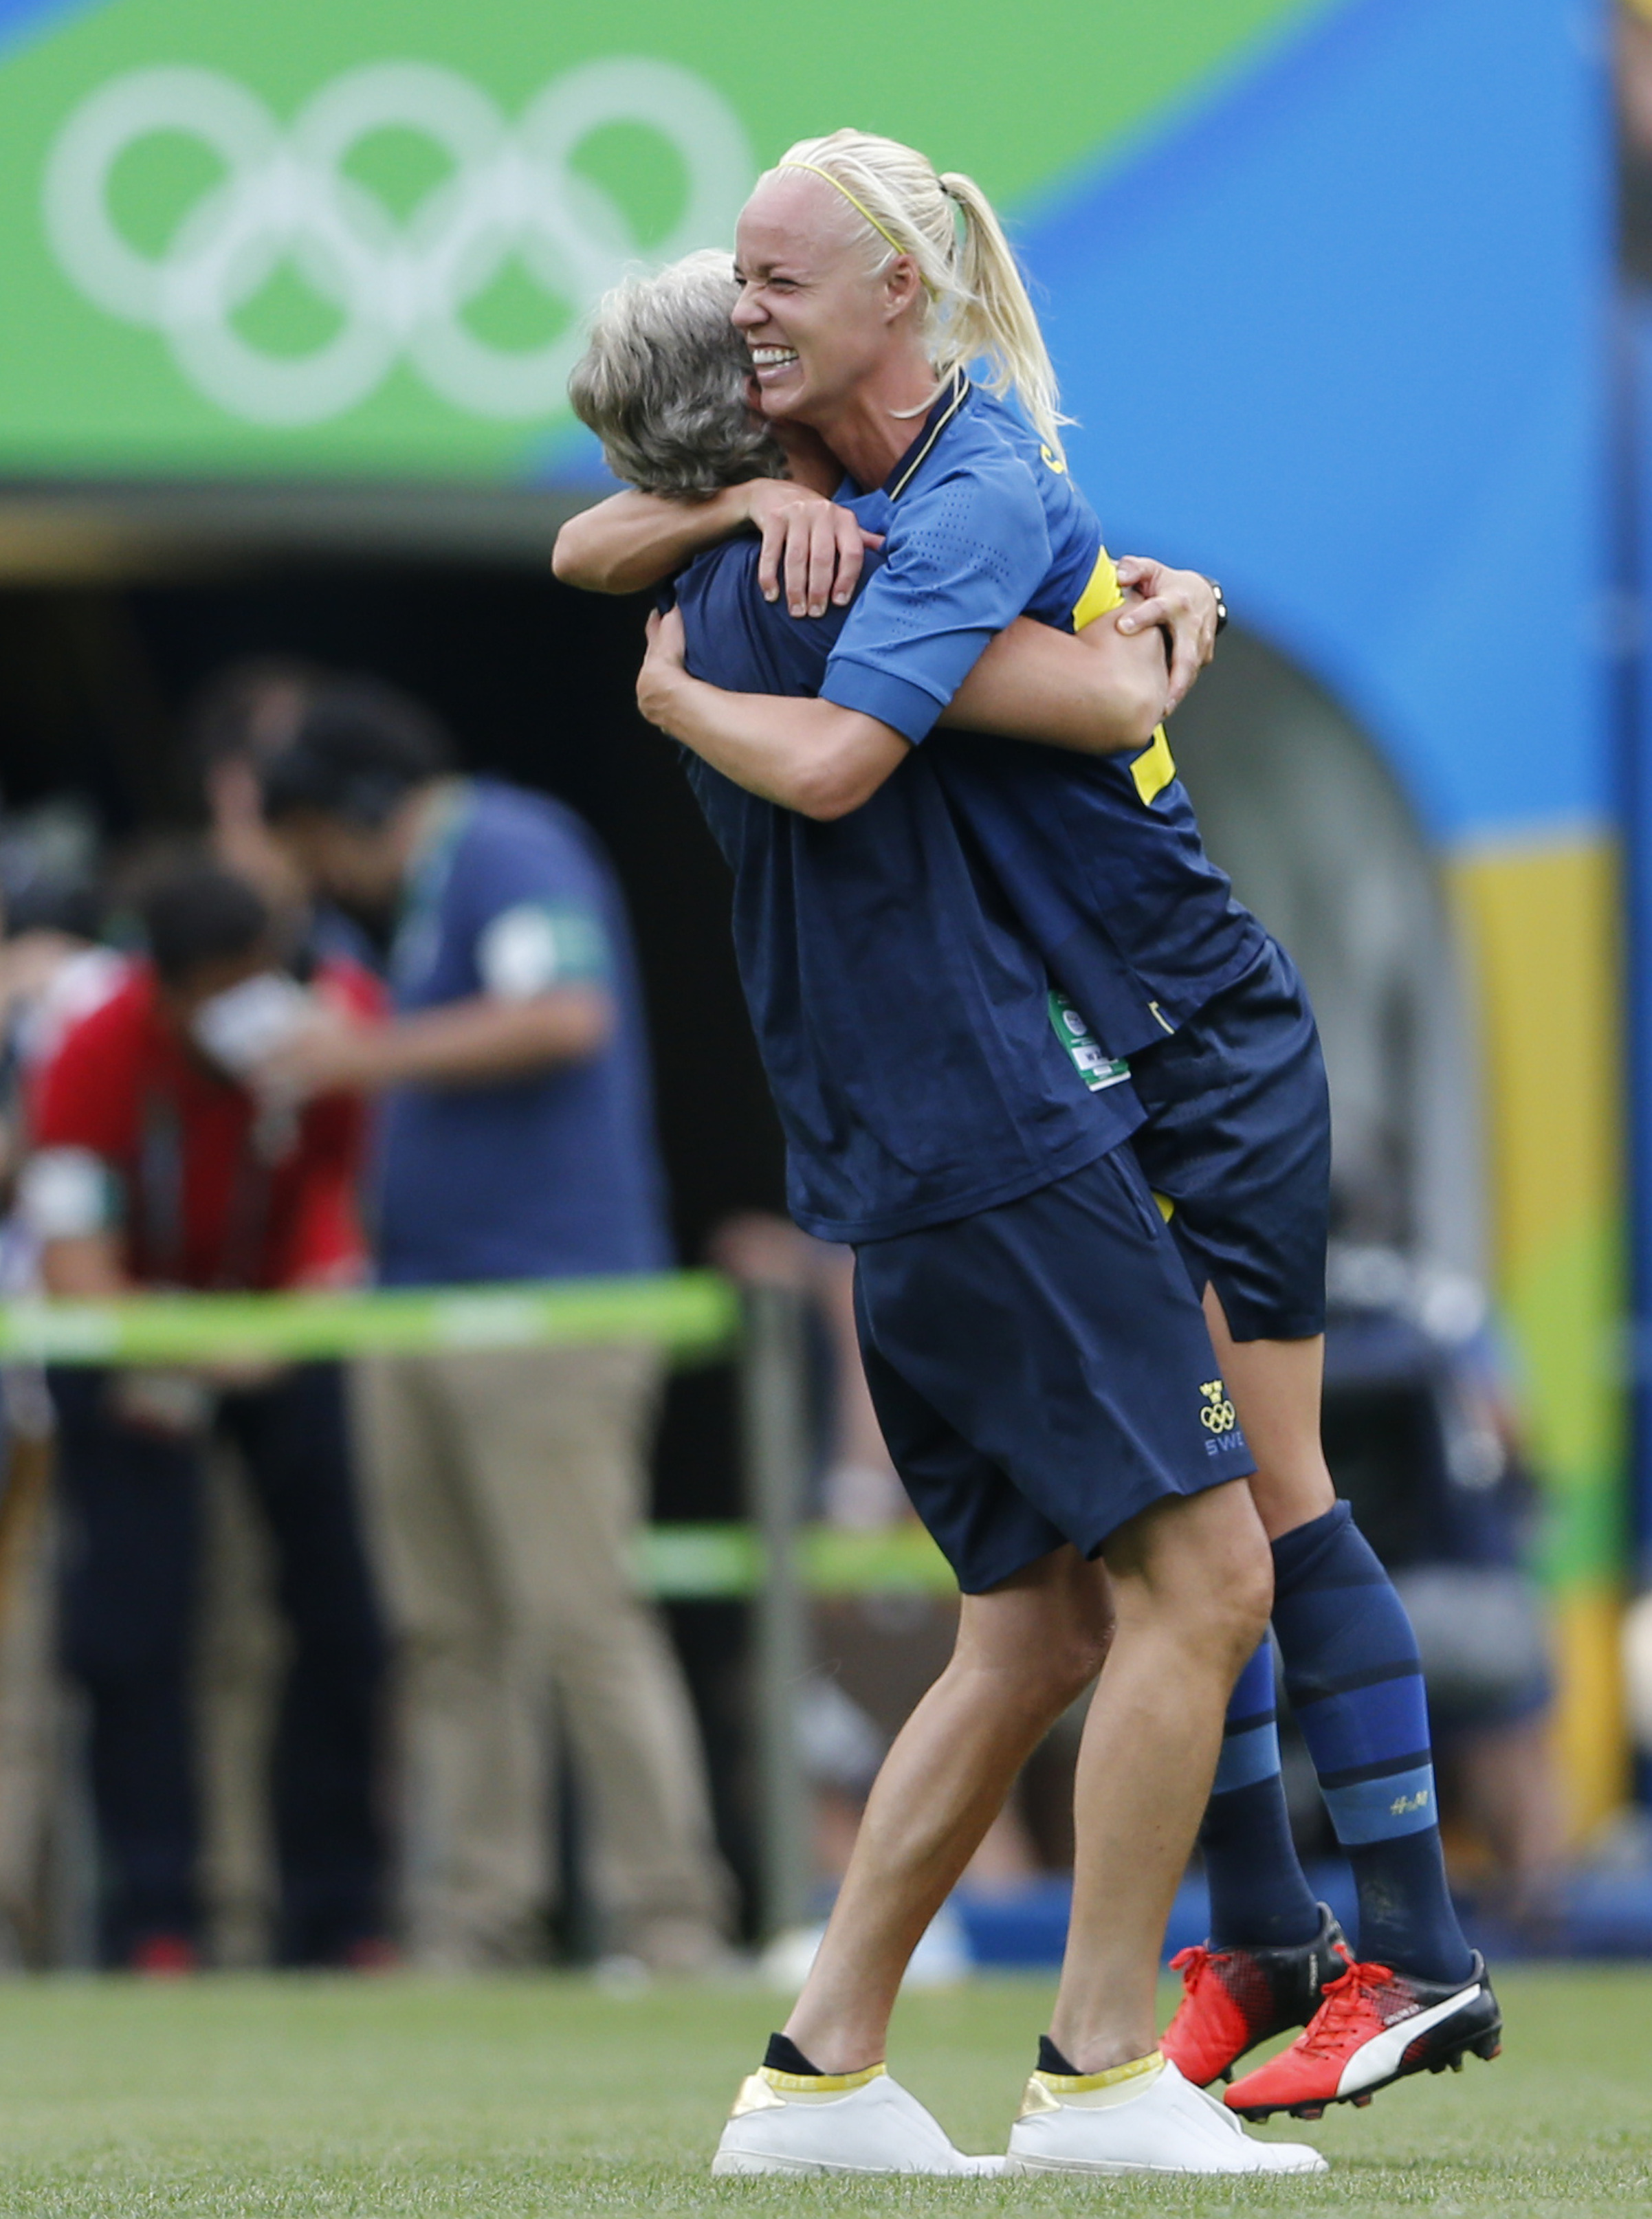 A Sweden player celebrate with a member of her team after penalty shootout during a semi-final match of the women's Olympic football tournament between Brazil and Sweden at the Maracana stadium in Rio de Janeiro, Brazil, Tuesday Aug. 16, 2016. Sweden qual